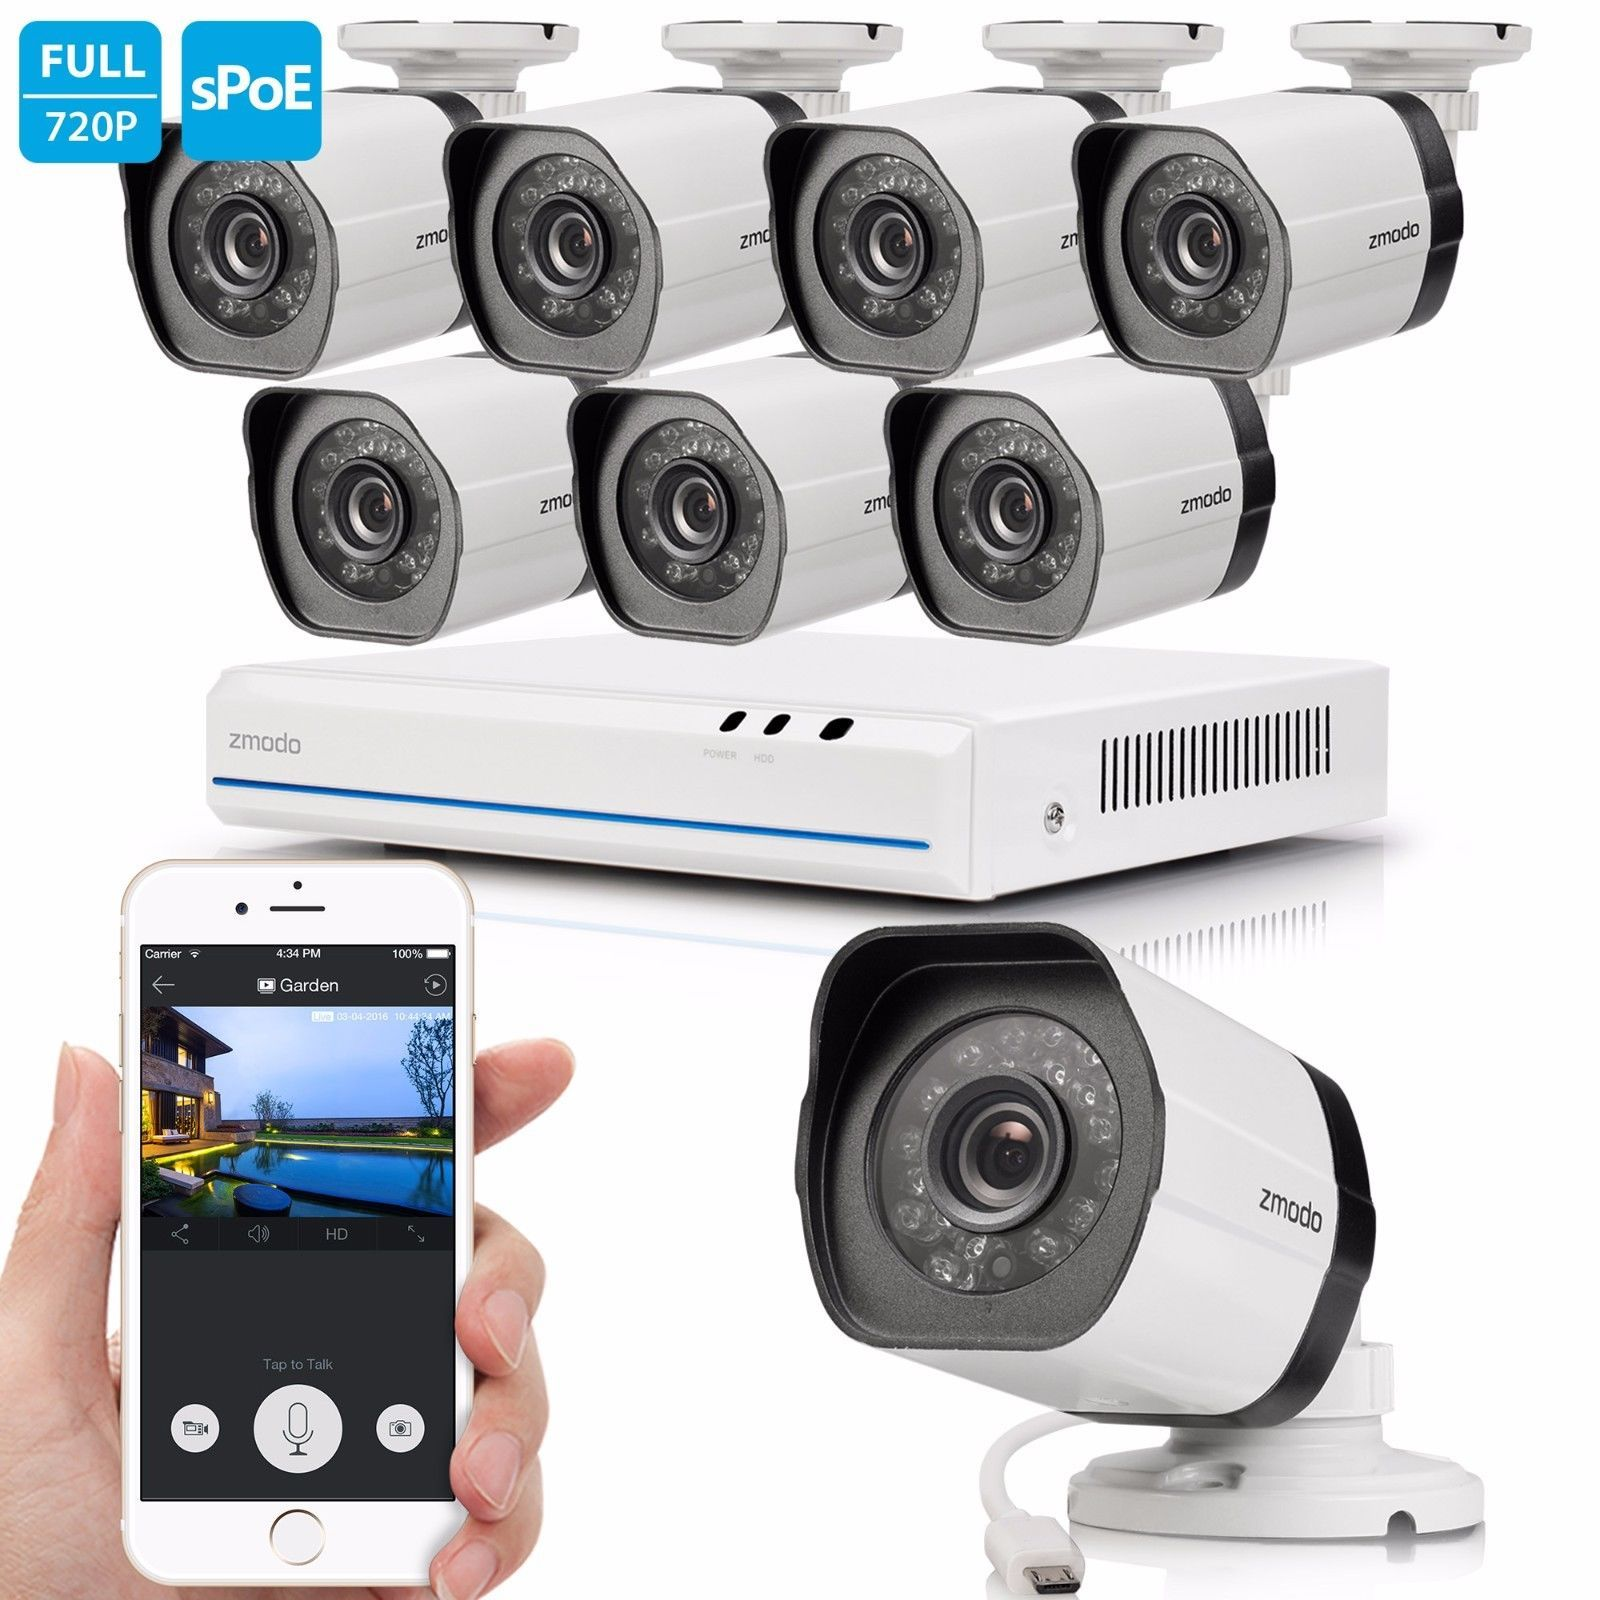 Funlux 720p HD 8 IP Wireless Outdoor IR Night Vision Home Security ...